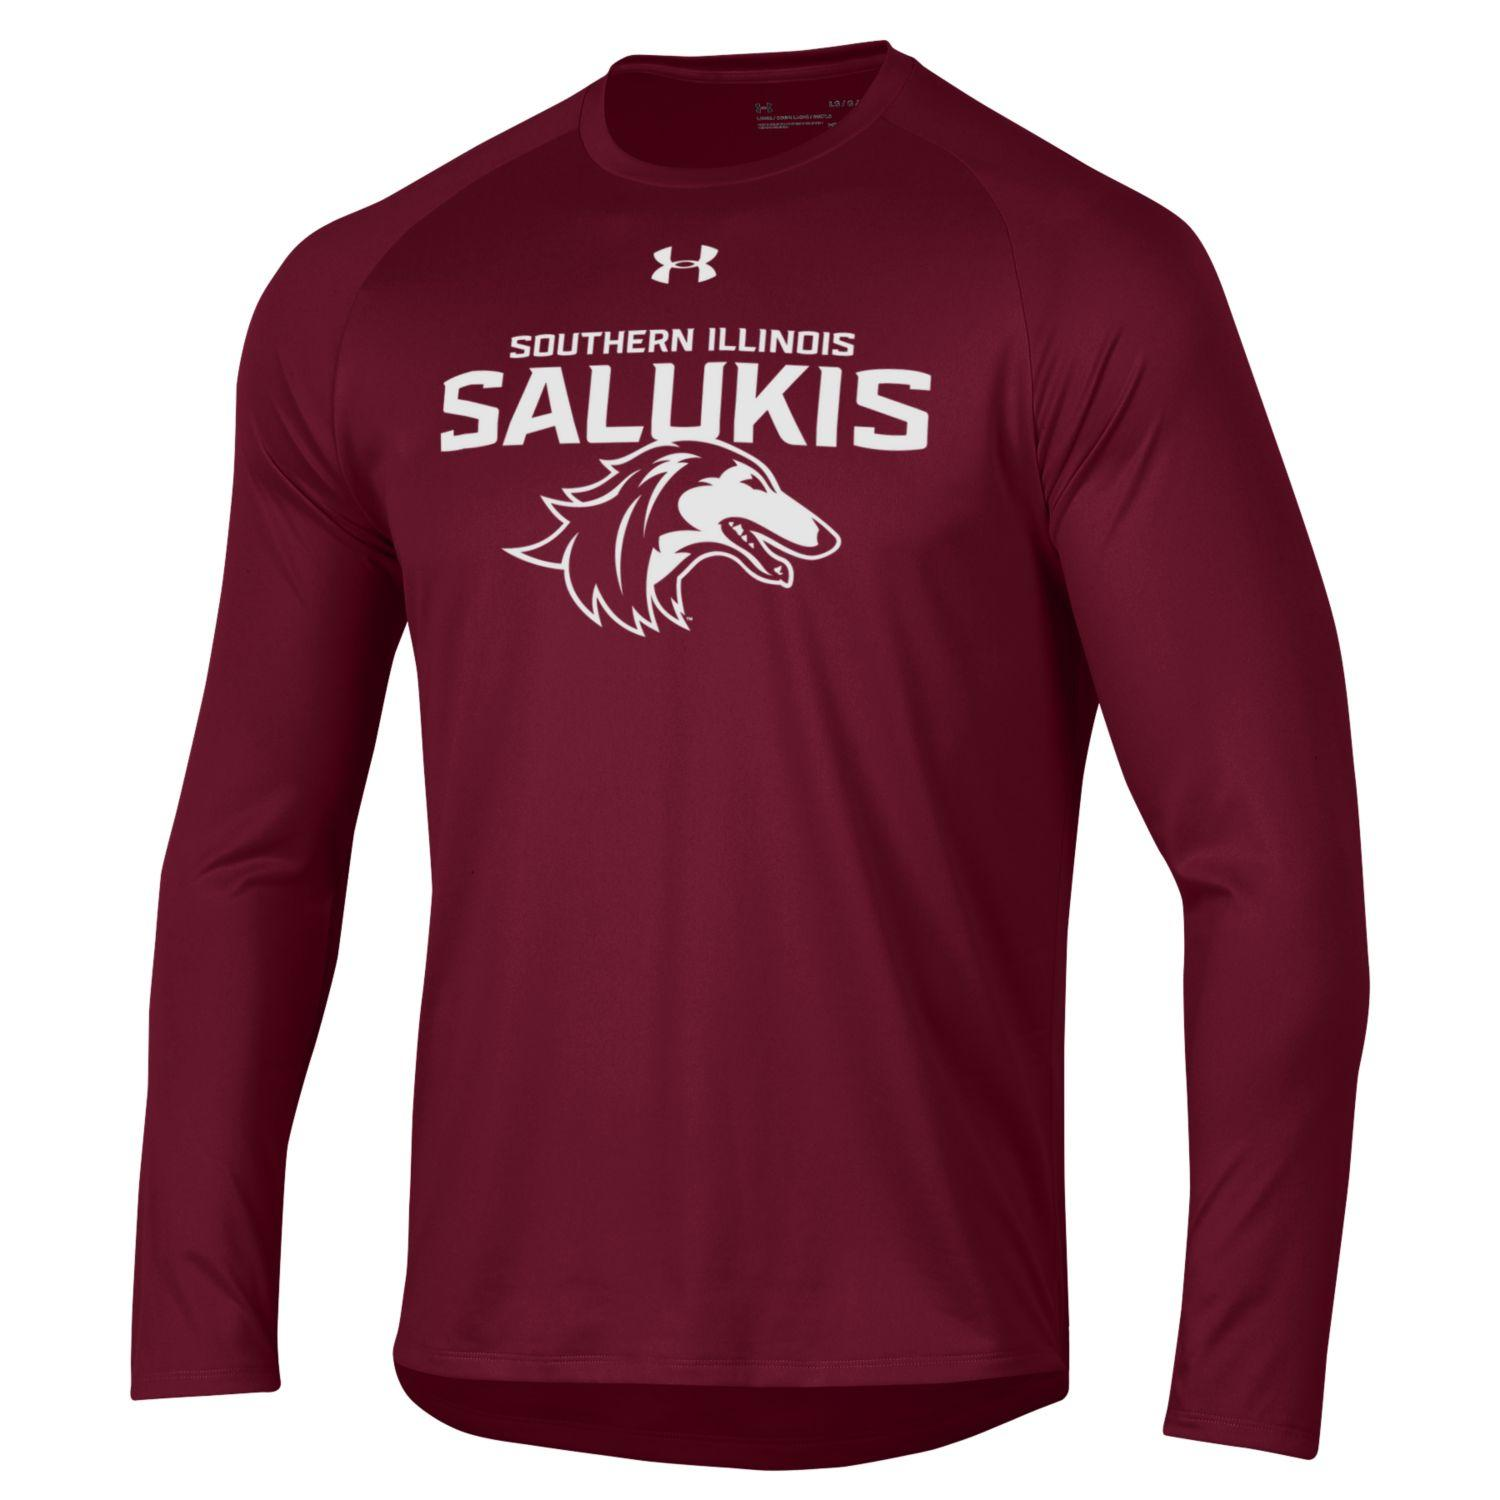 Image for the NEW 2019 ATHLETIC LOGO SOUTHERN ILLINOIS SALUKIS UNDER ARMOUR LONG SLEEVE TEE product